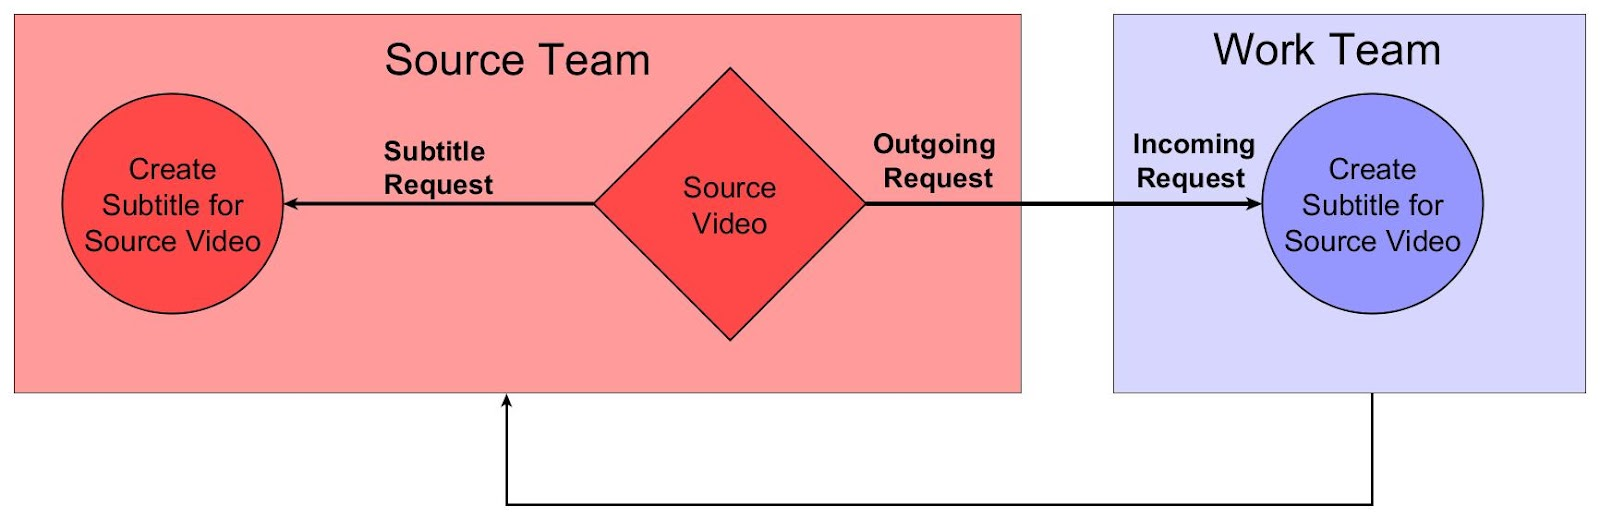 Diagram showing subtitle request workflow between source team and work team